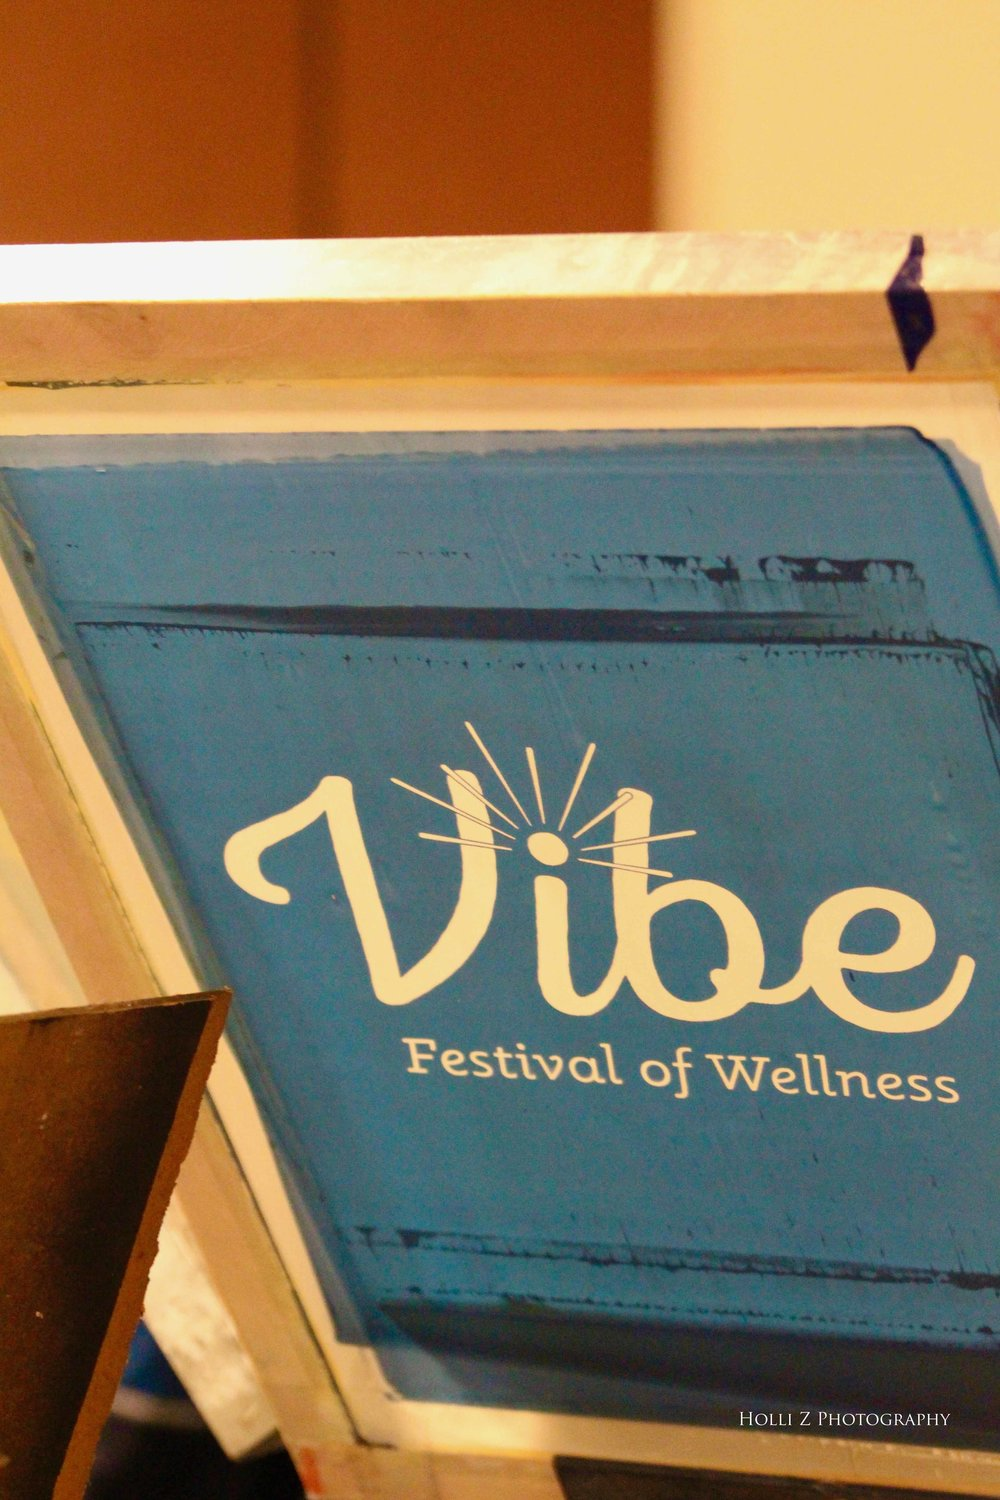 VIBE Festival of Wellness - Holli Z Photography - 246.jpg